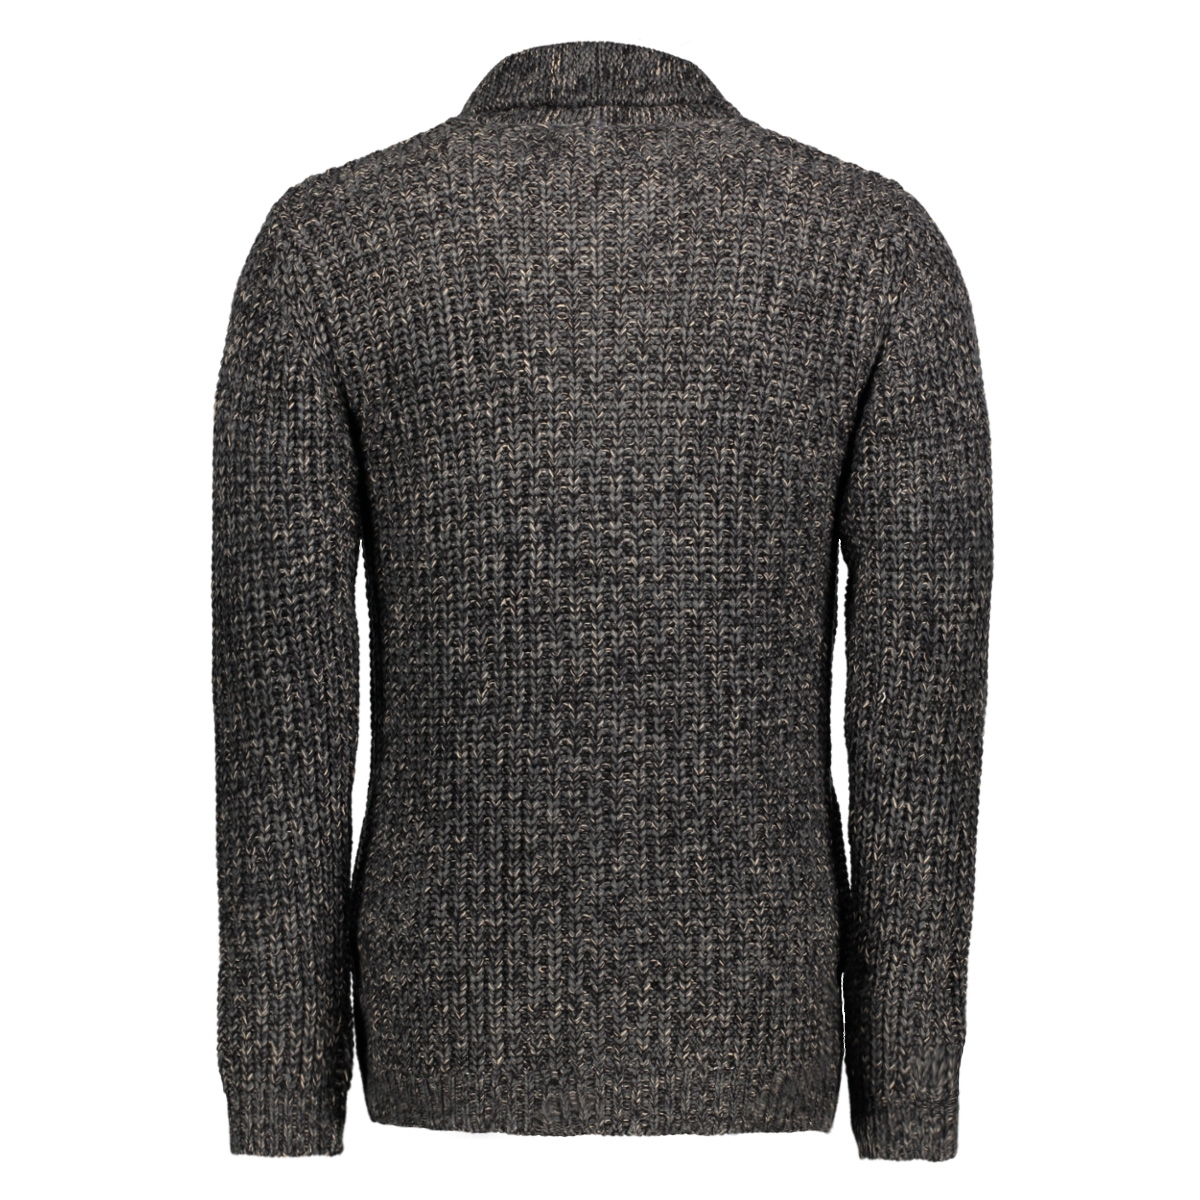 onsotto knit cardigan 22008082 only & sons vest black